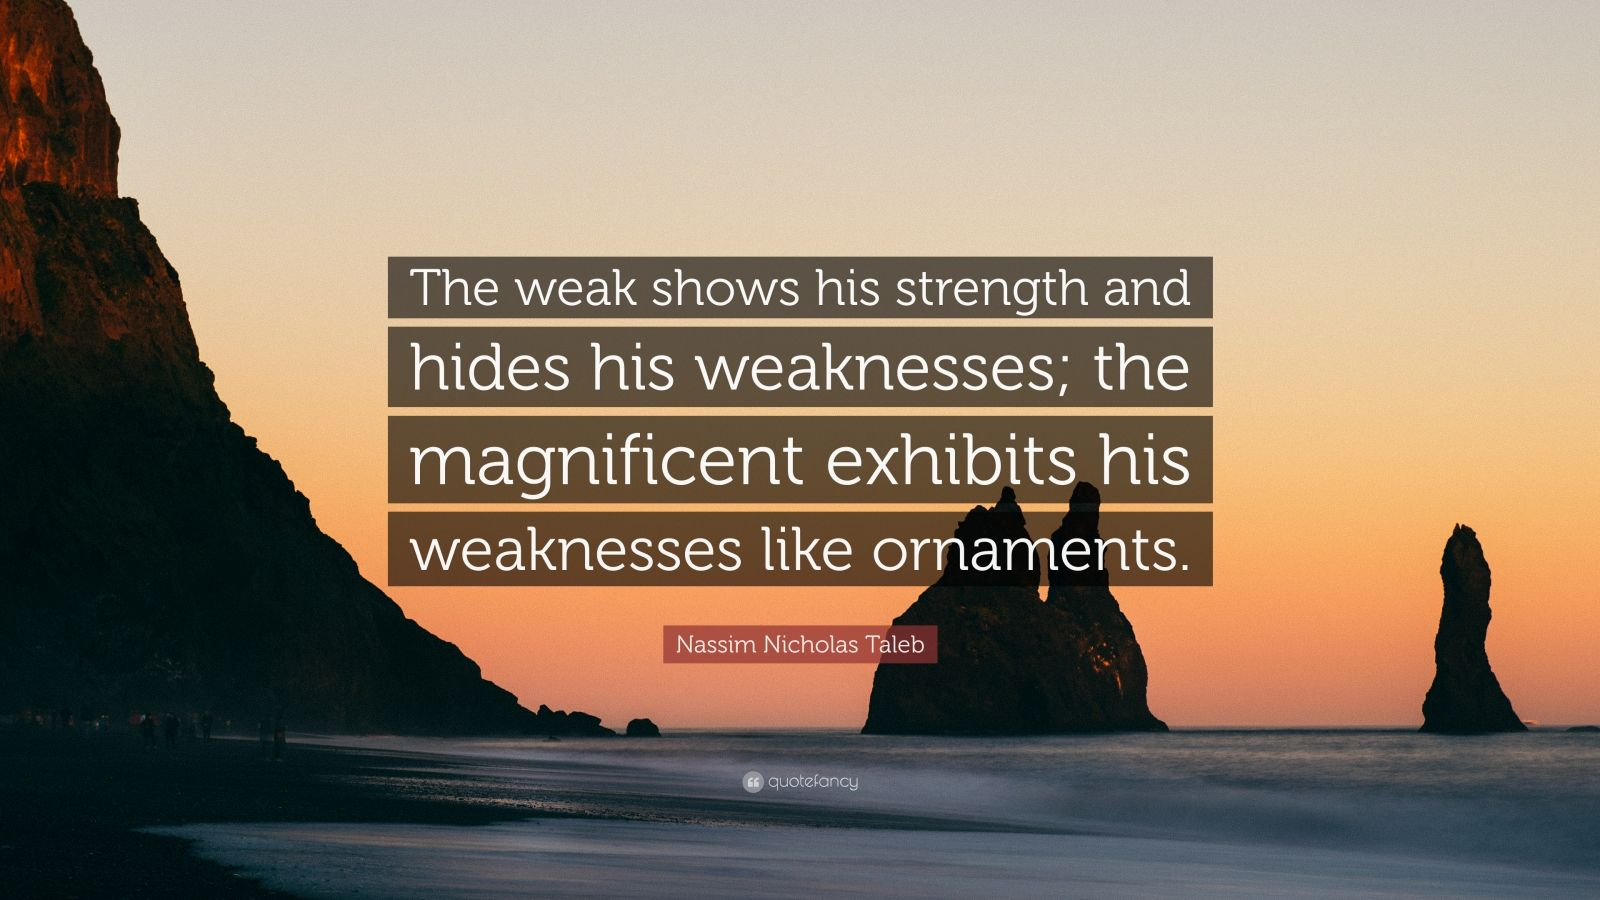 """Nassim Nicholas Taleb Quote: """"The weak shows his strength and hides his weaknesses; the magnificent exhibits his weaknesses like ornaments."""""""